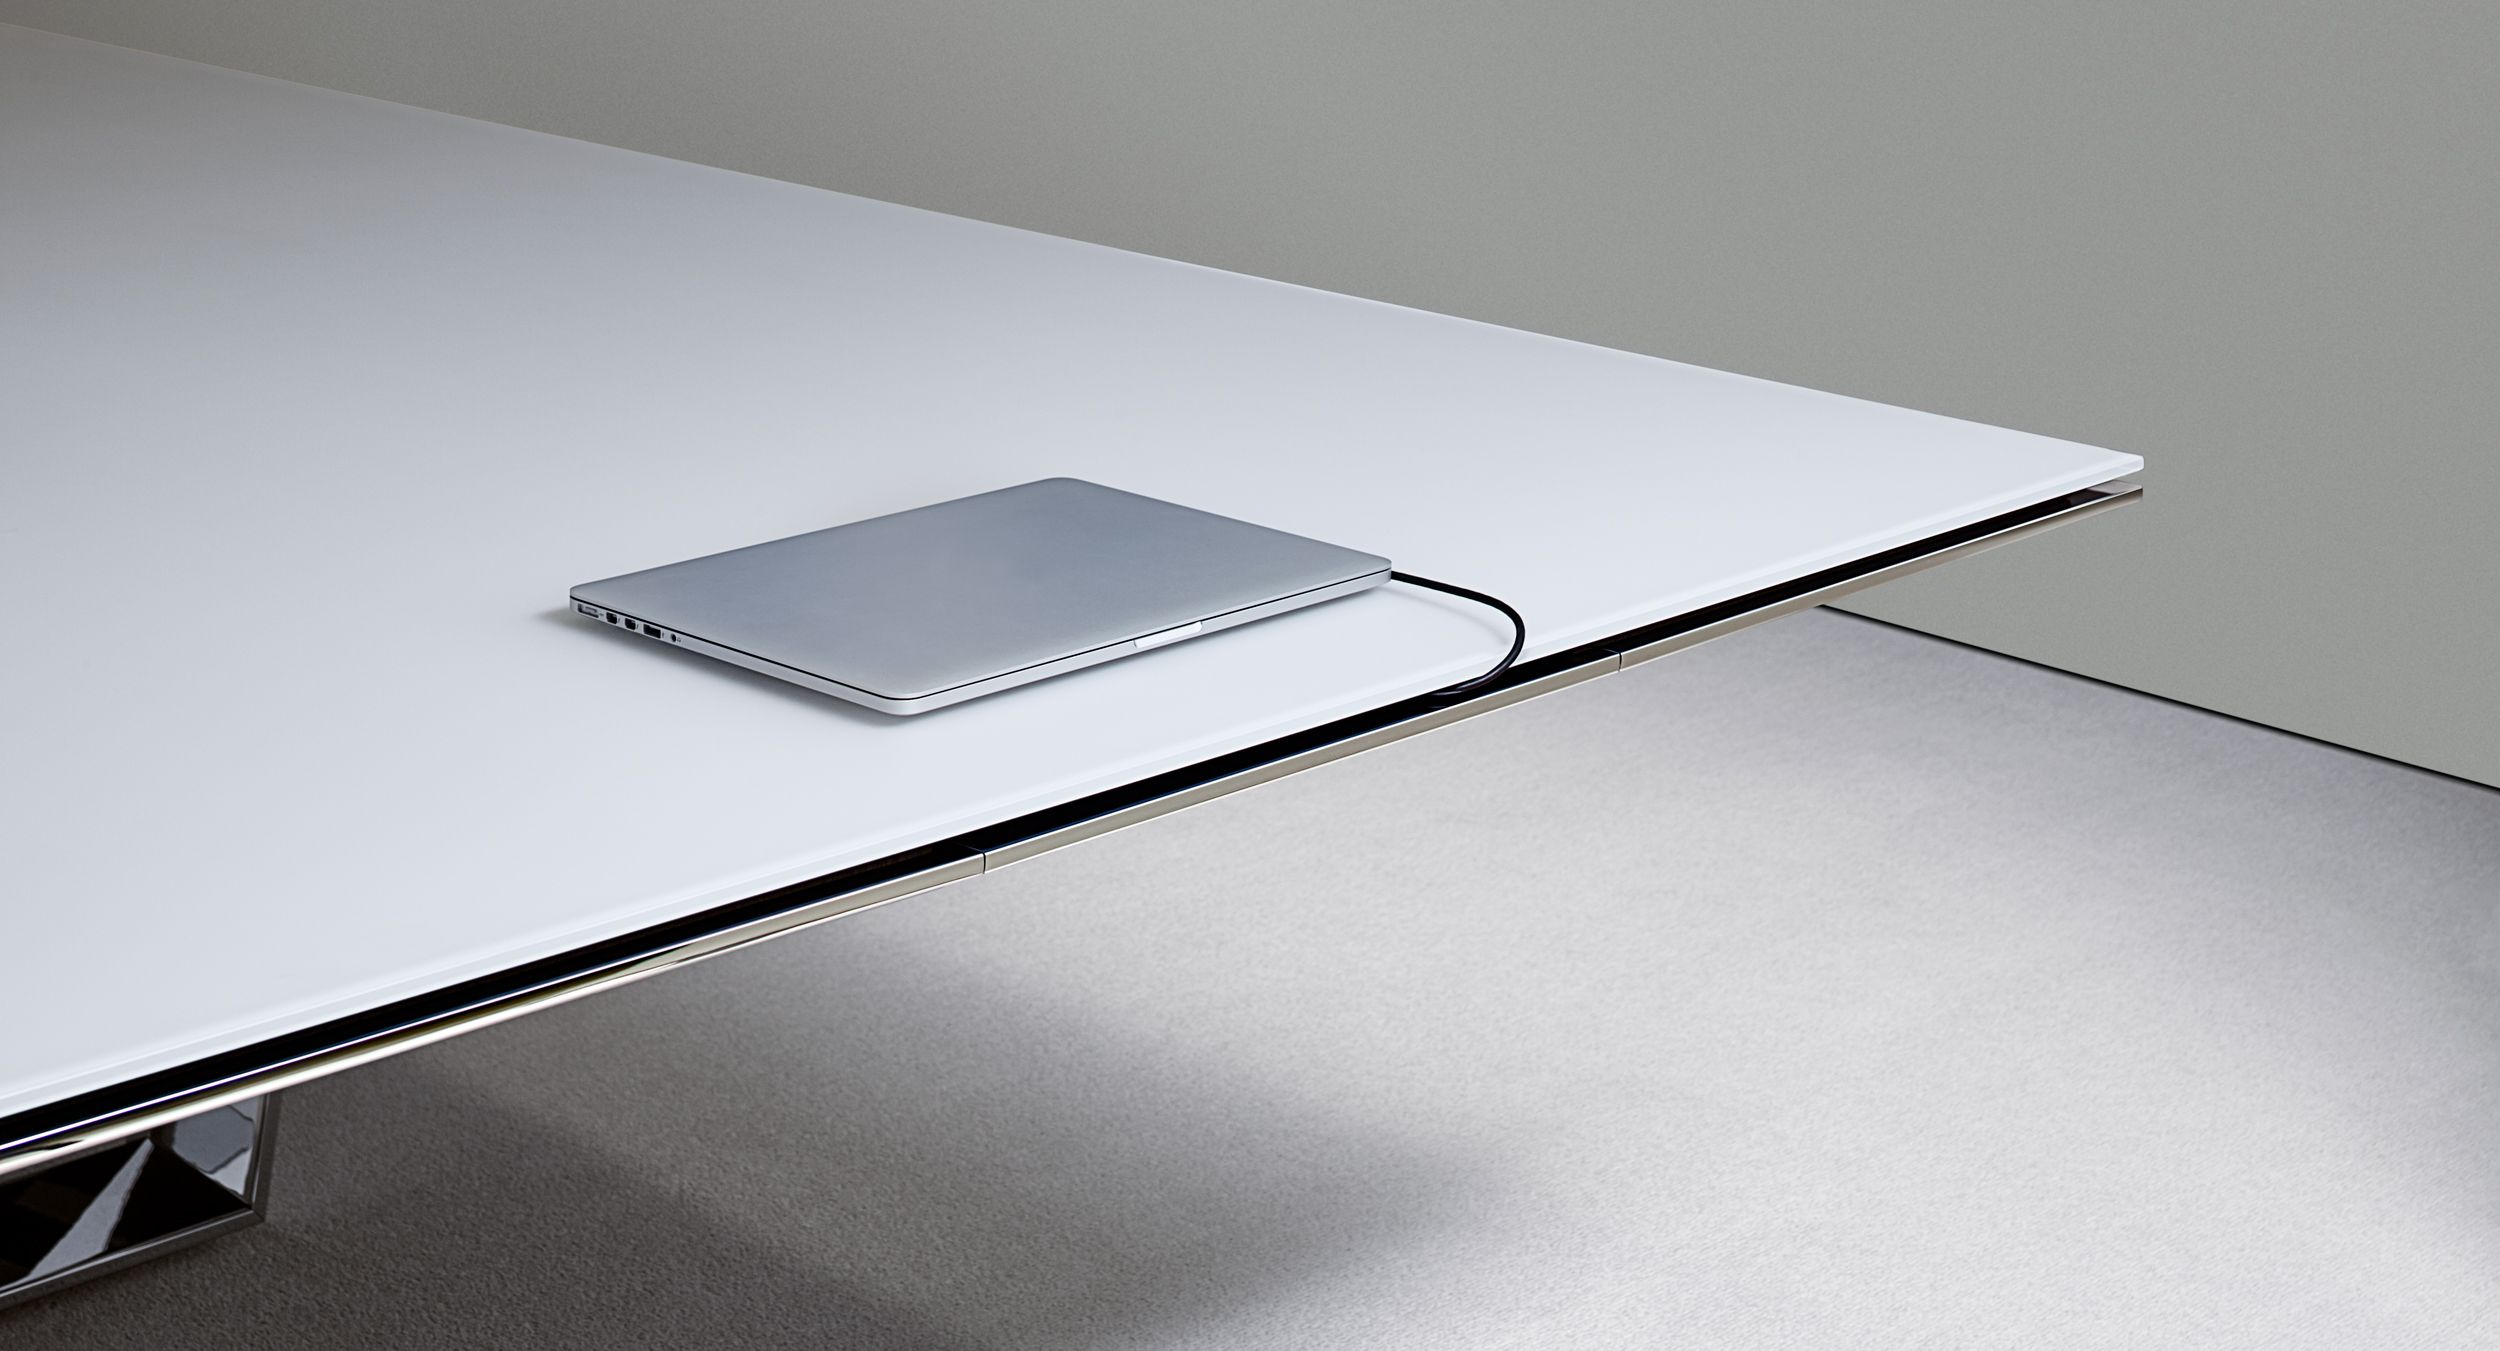 Cables exit gracefully from a continuous edge reveal above the concealed drawer, eliminating the typical mess of wires.